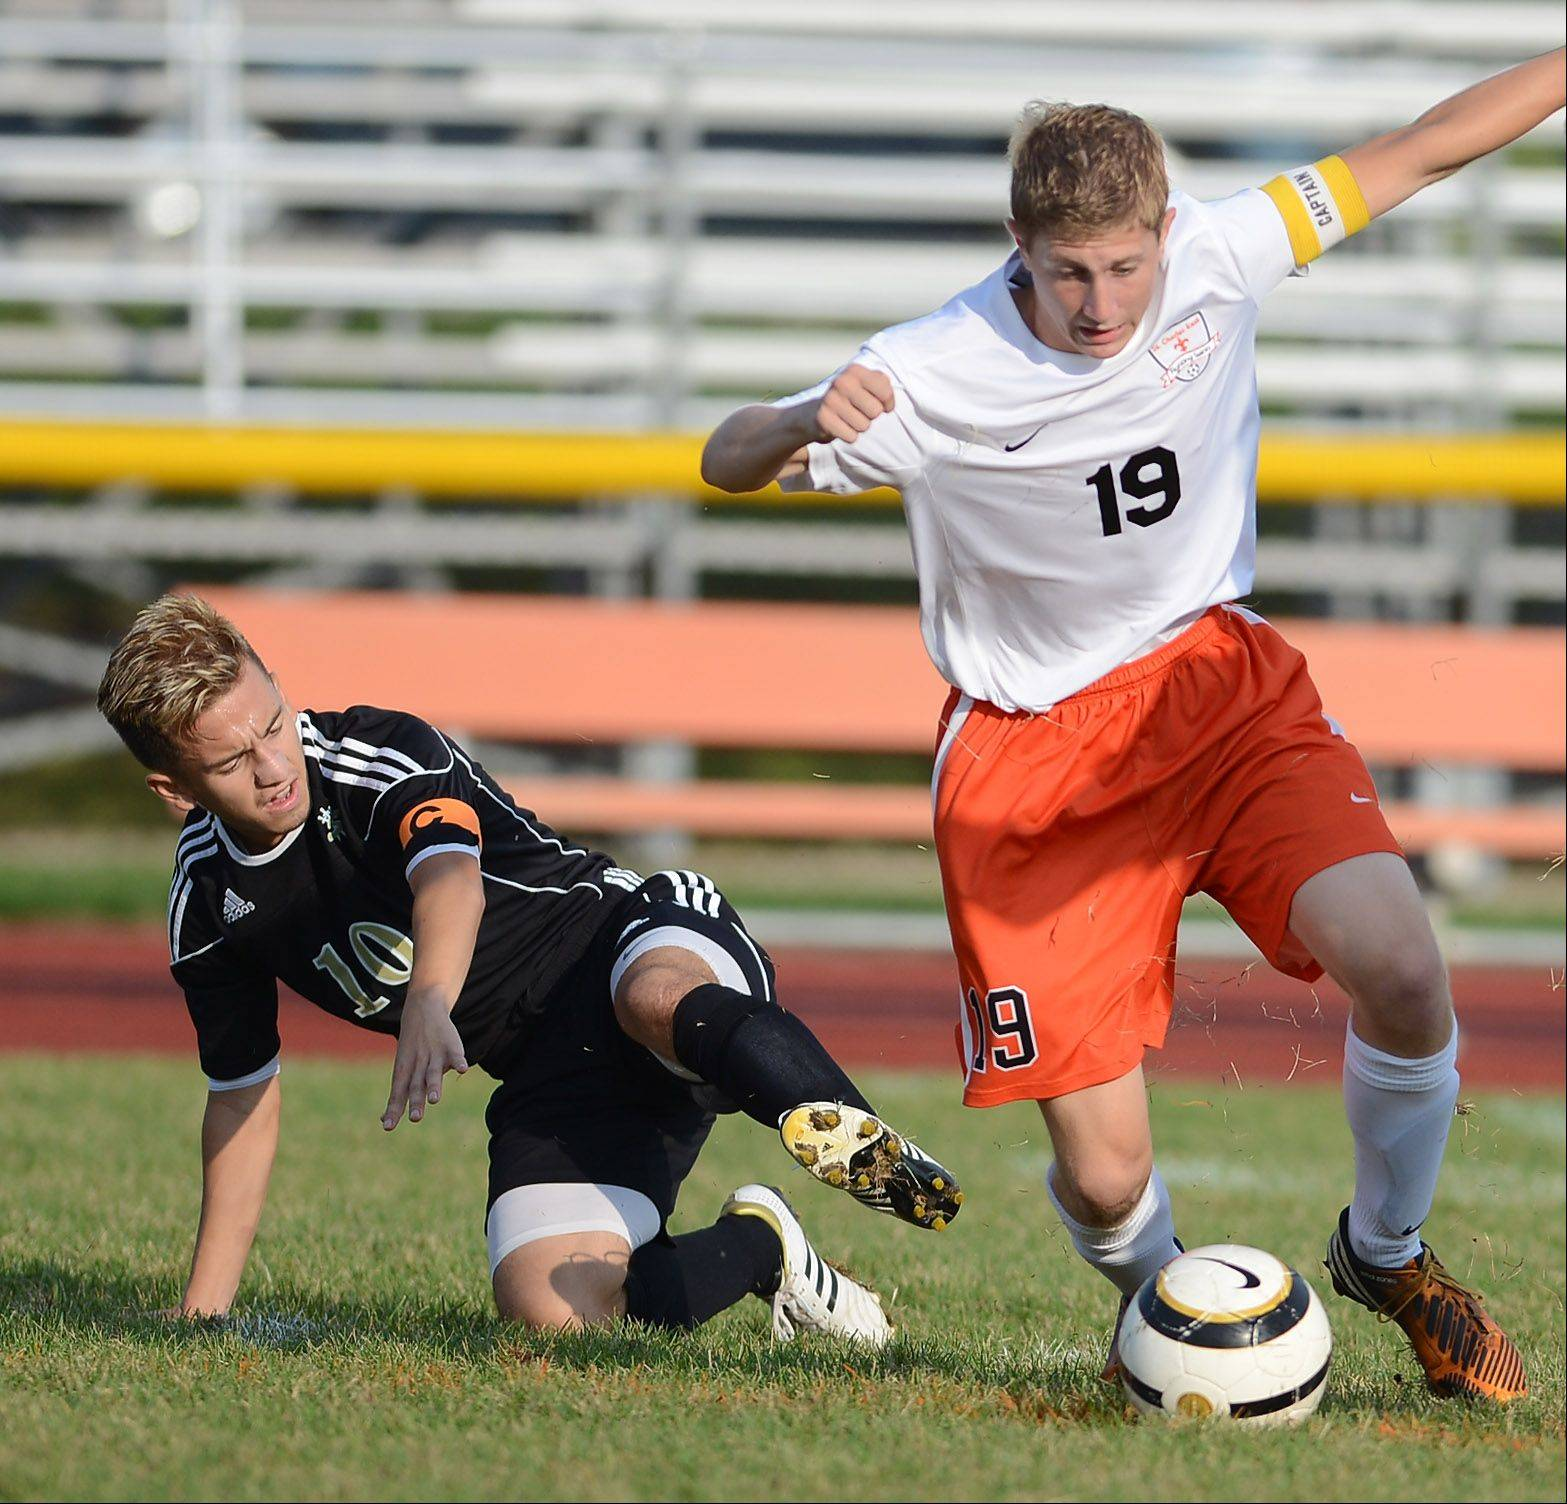 St. Charles East's Andrew Shone gets past Streamwood's Nestor Ascencio during Thursday's game in St. Charles.